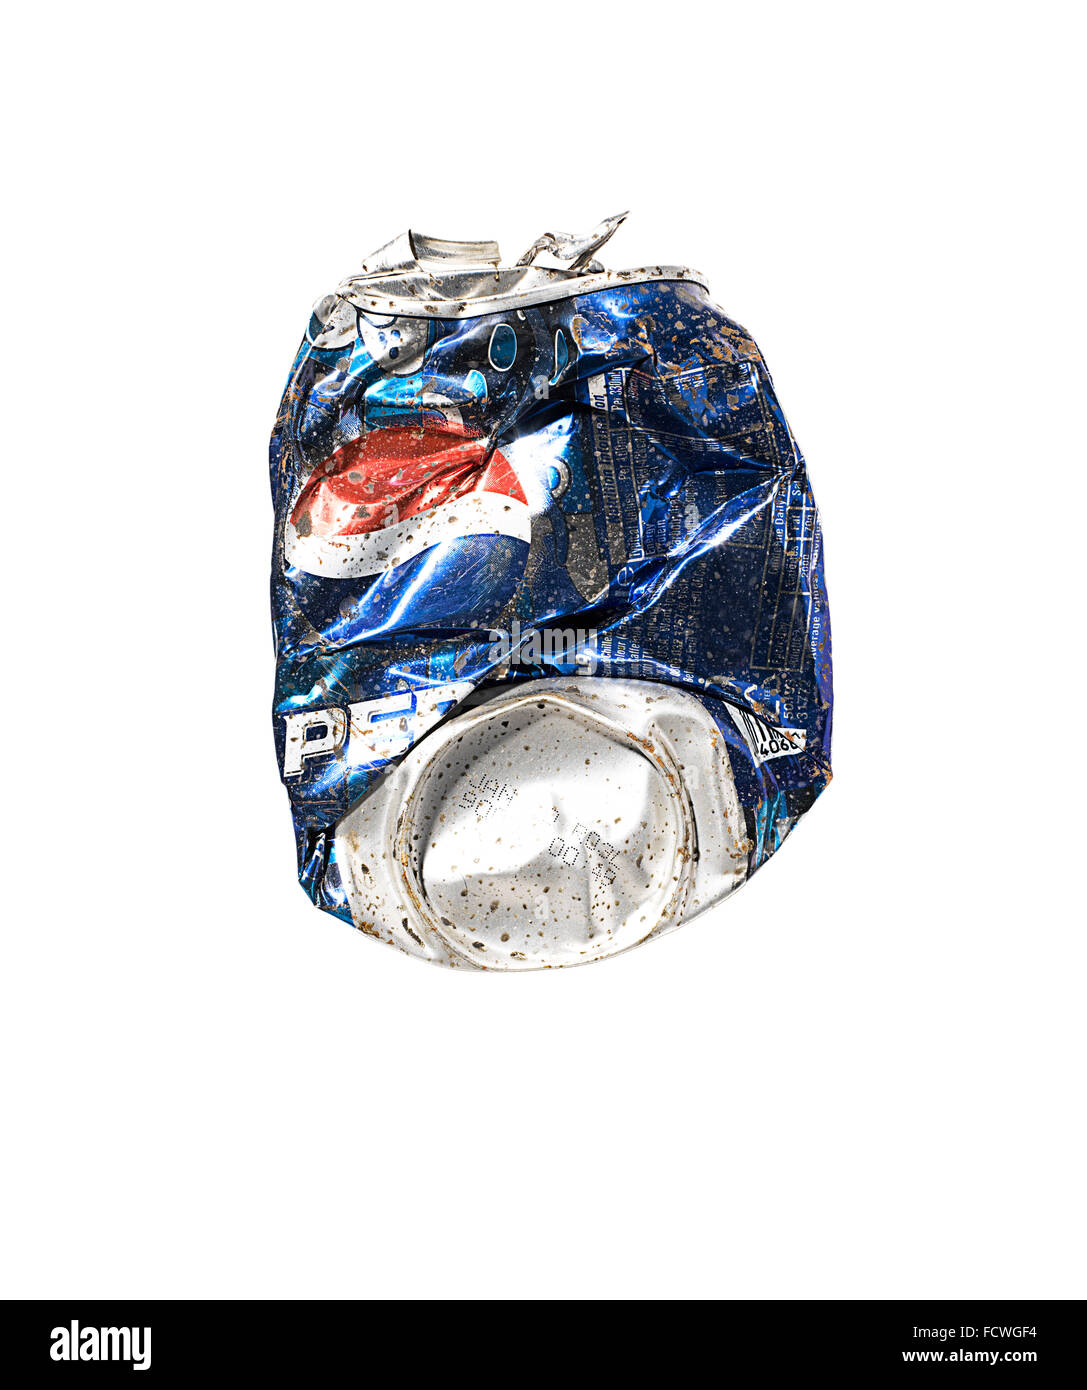 A crushed can of Pepsi - Stock Image